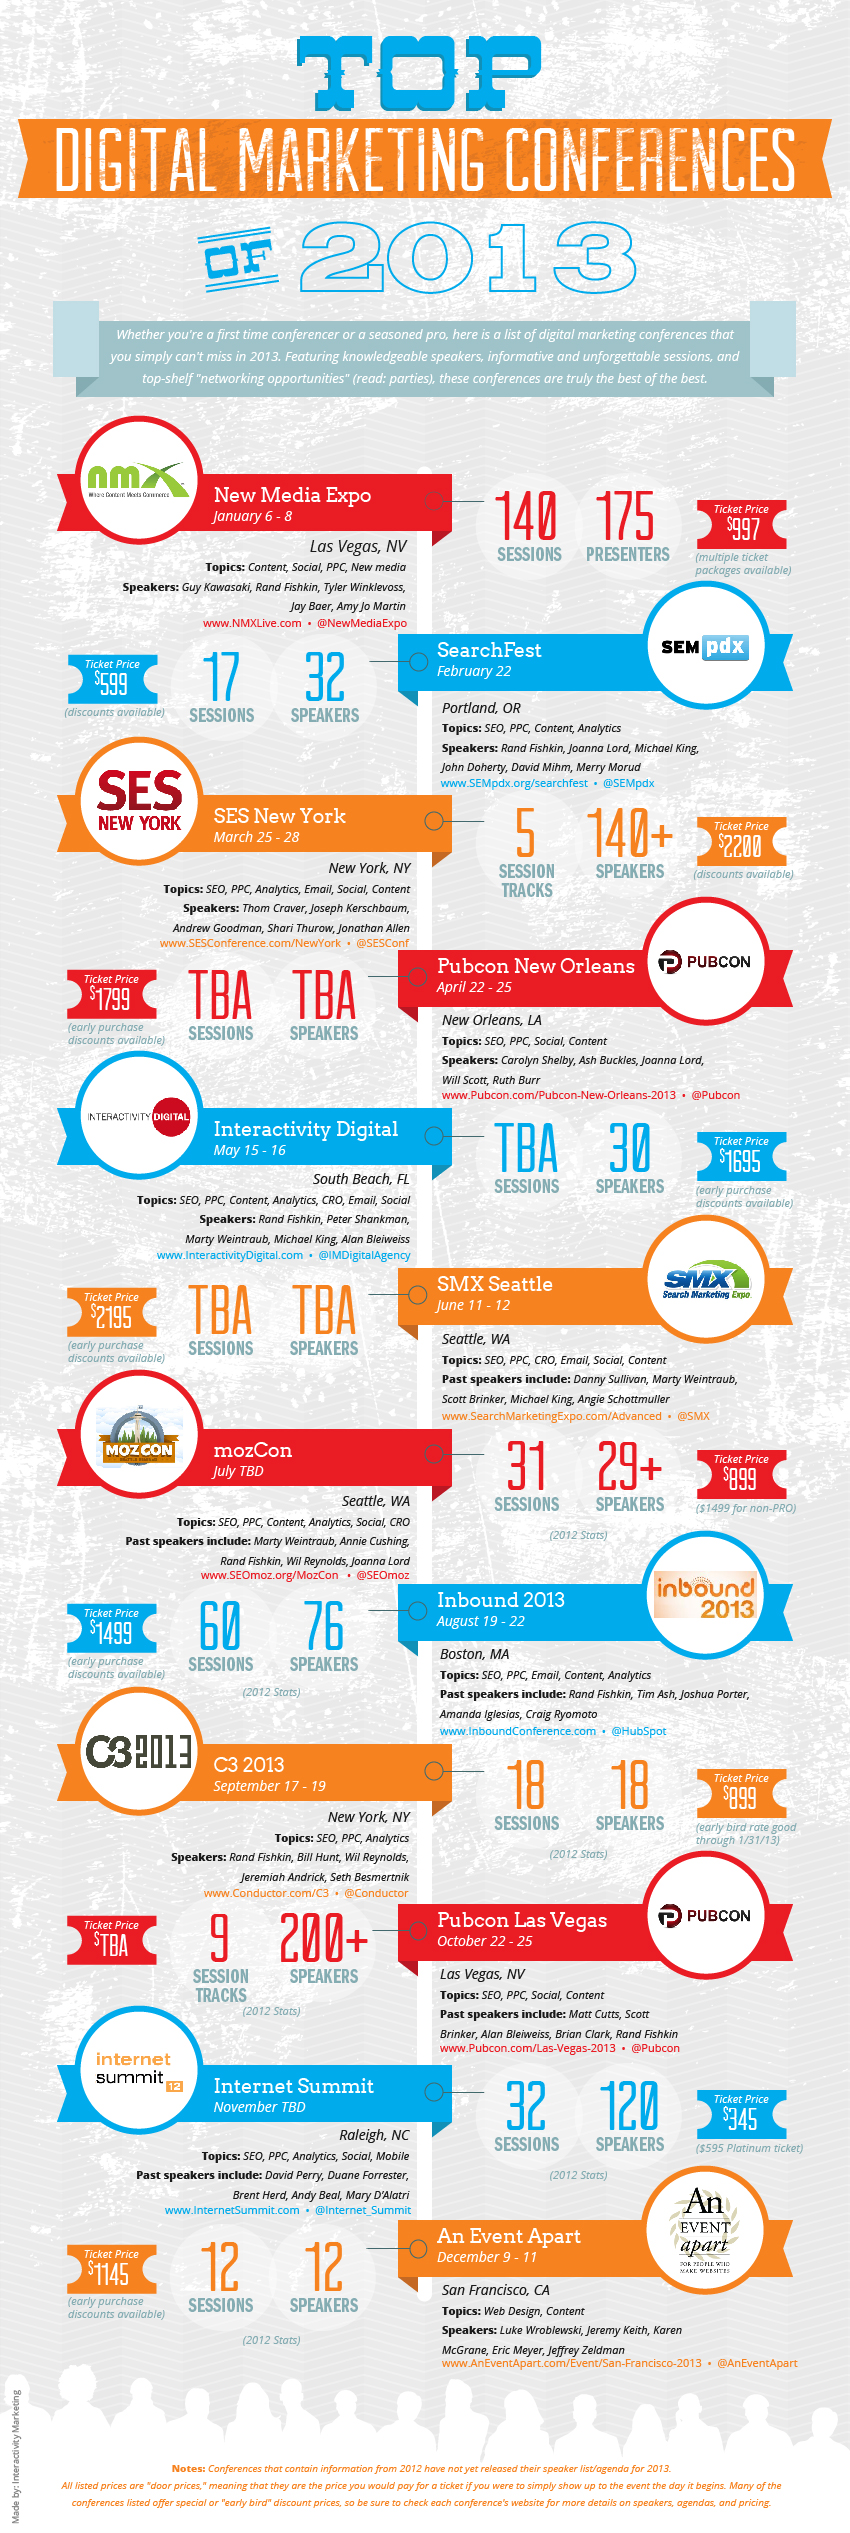 top-digital-marketing-conferences-of-2013_50e6e87ac3e0e